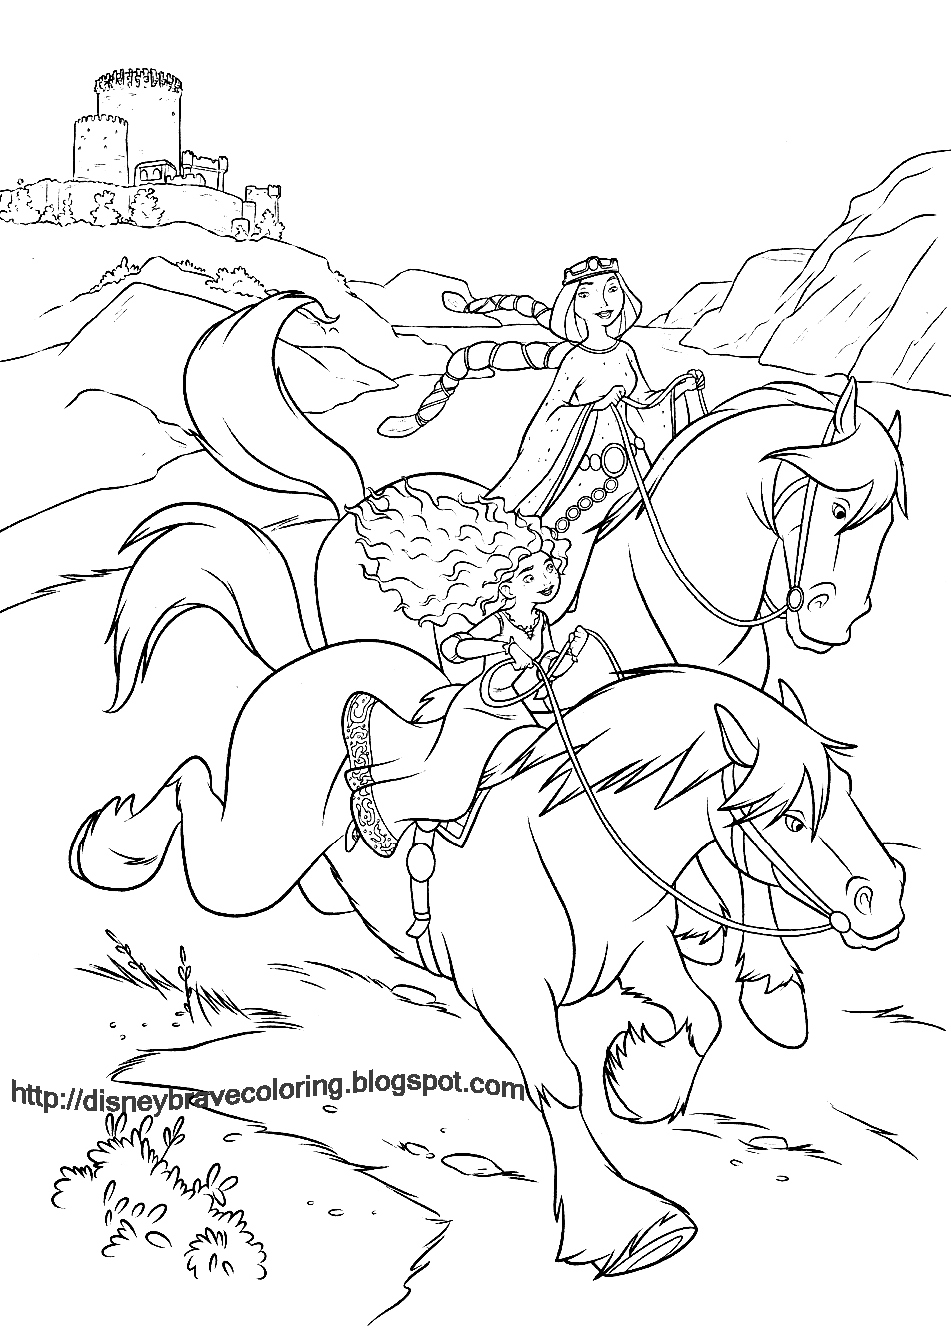 brave coloring sheet horses - Brave Coloring Pages